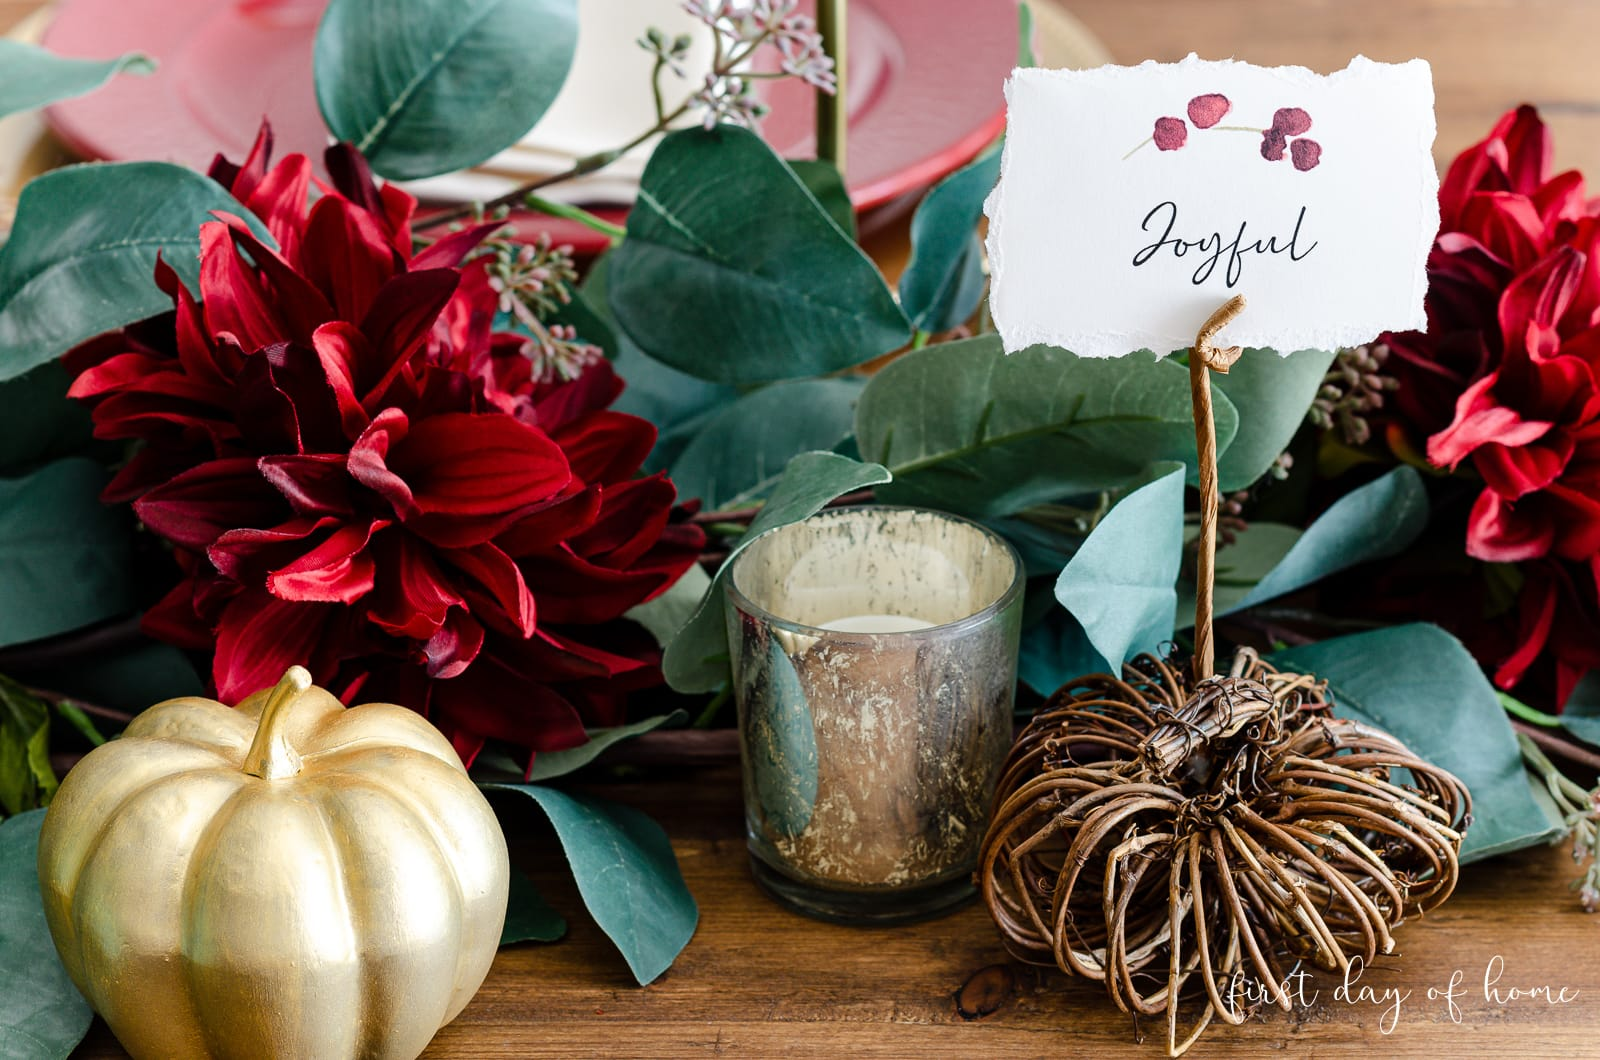 Faux greenery with burgundy flowers, mercury glass votive candle holders, gold painted pumpkins and DIY pumpkin place card holders with place cards